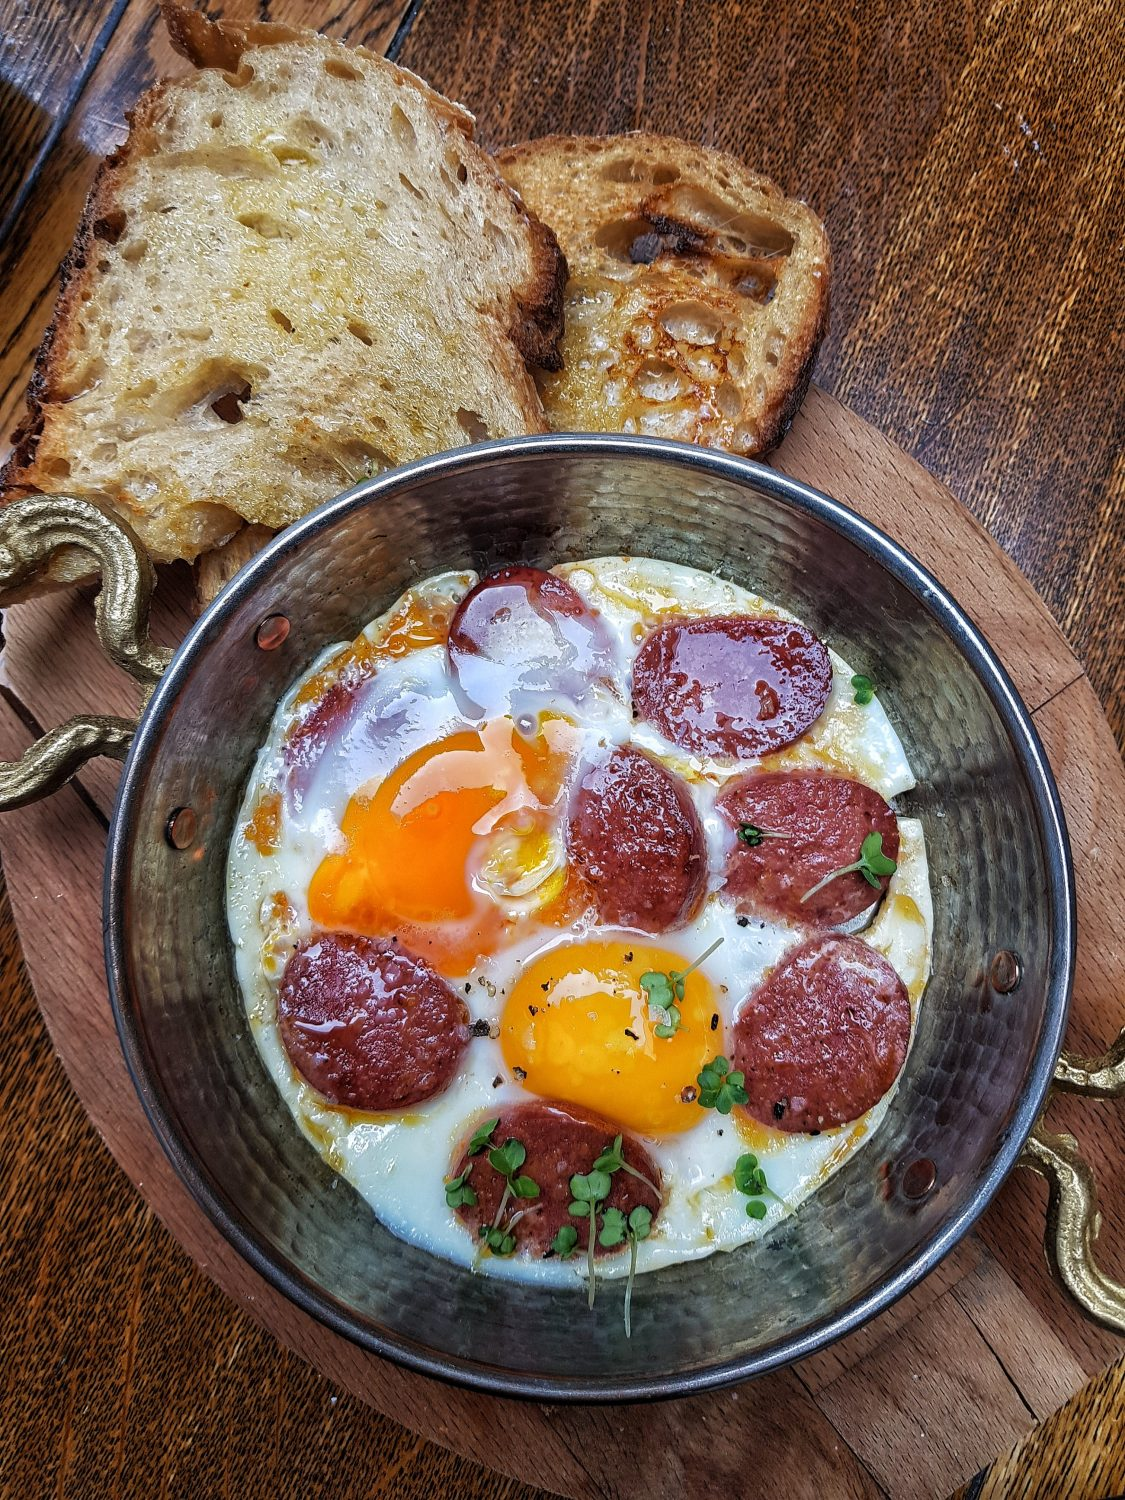 Sucuklu Yumurta aka sunny side eggs with Turkish Sausage